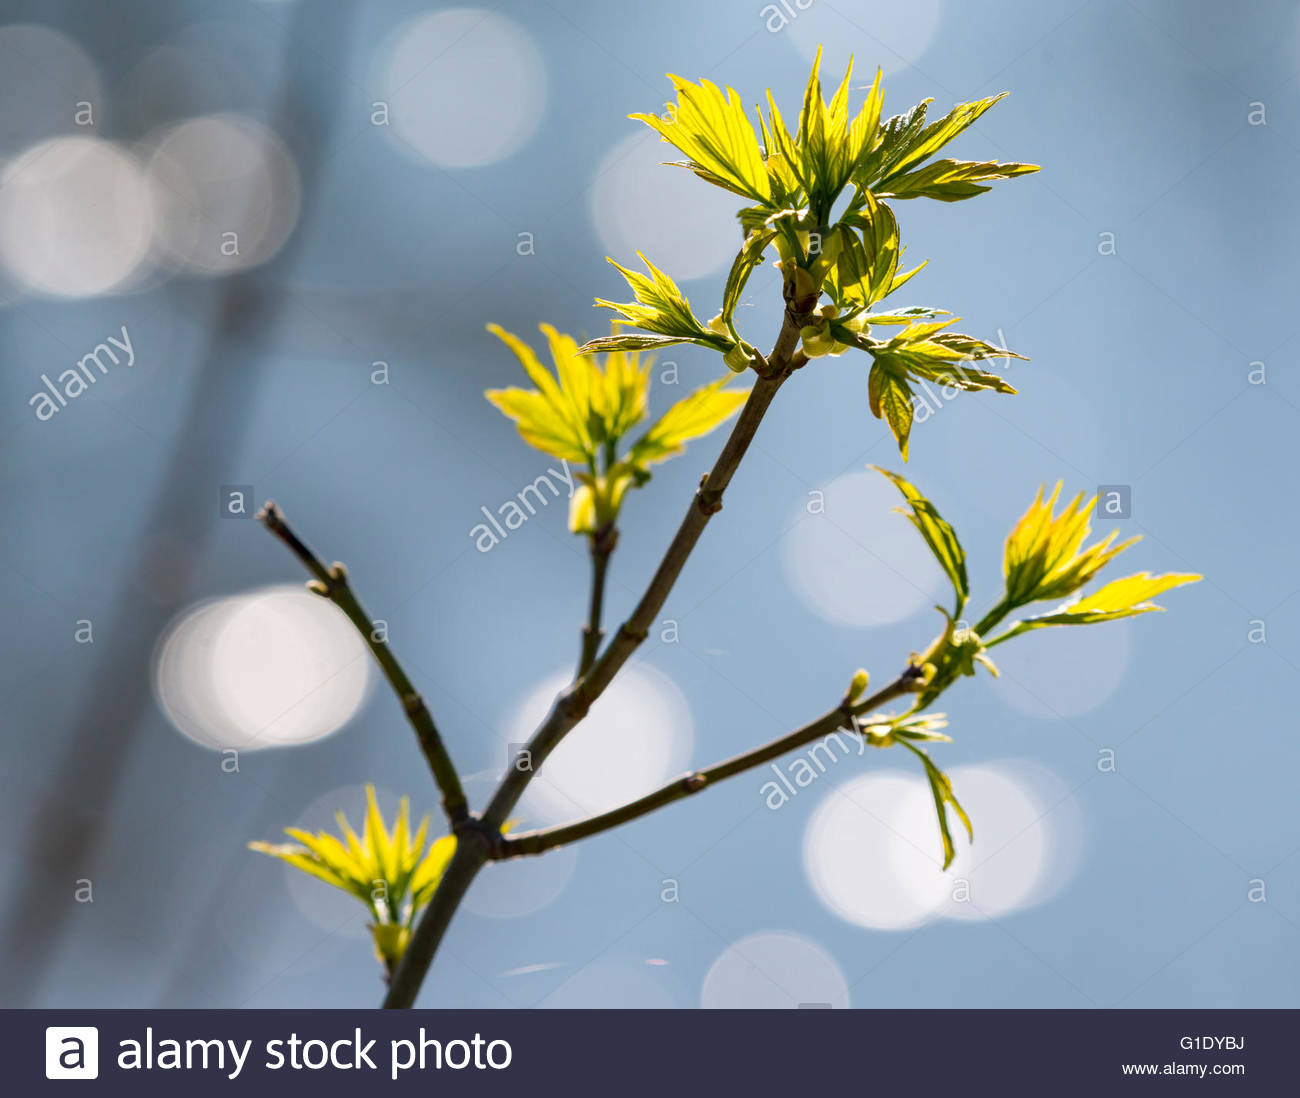 The Beginning Of Spring Season Details Of Trees And Bushes Getting